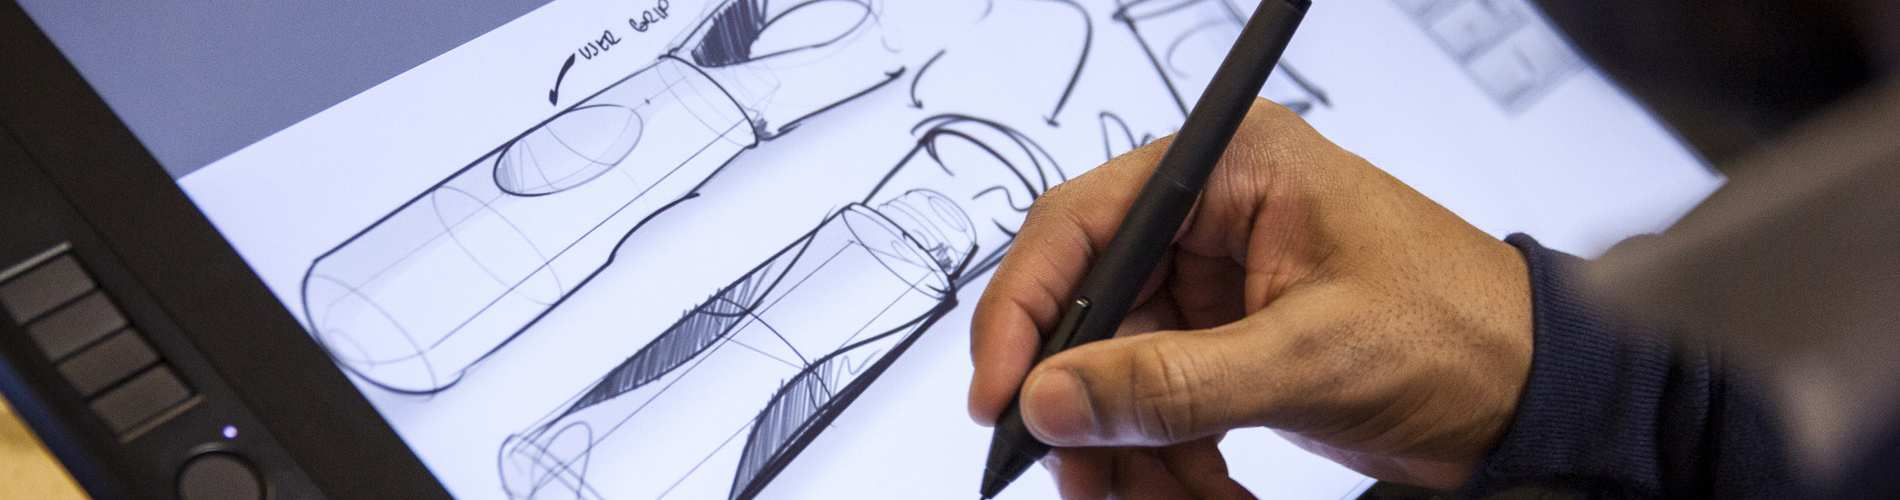 Hand drawing medical devices on interactive touch screen digital display.